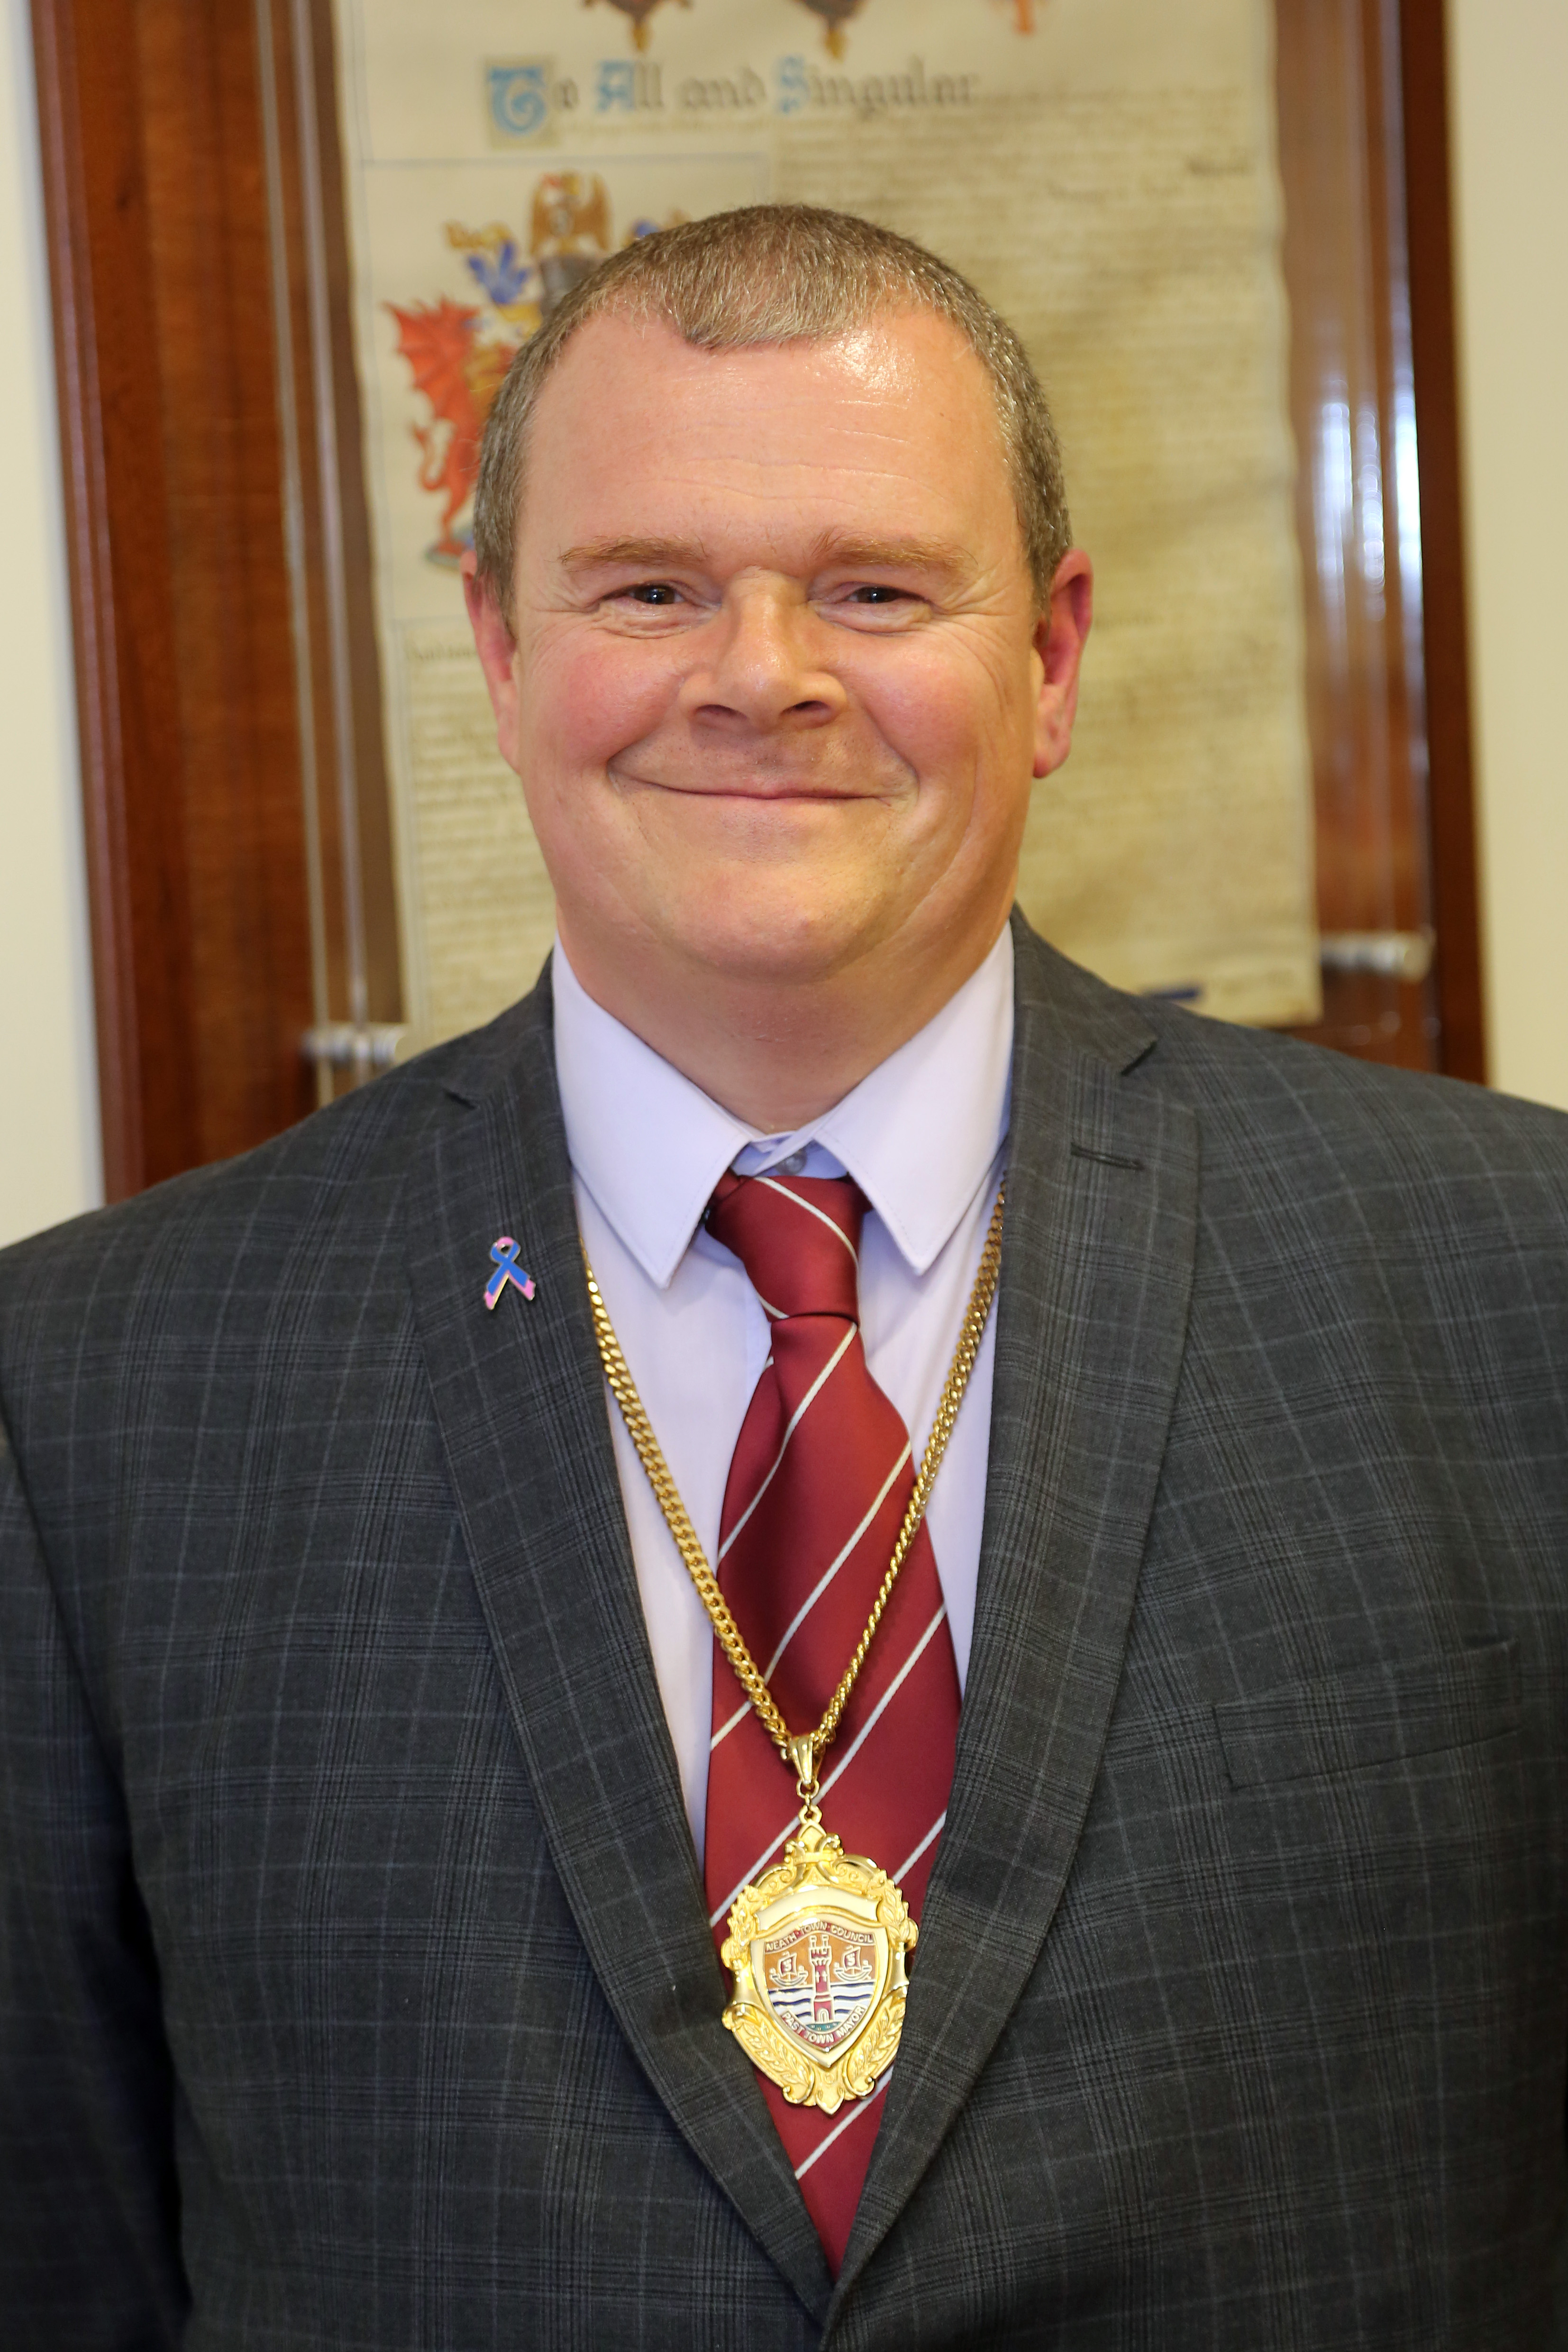 Cllr Mark Protheroe